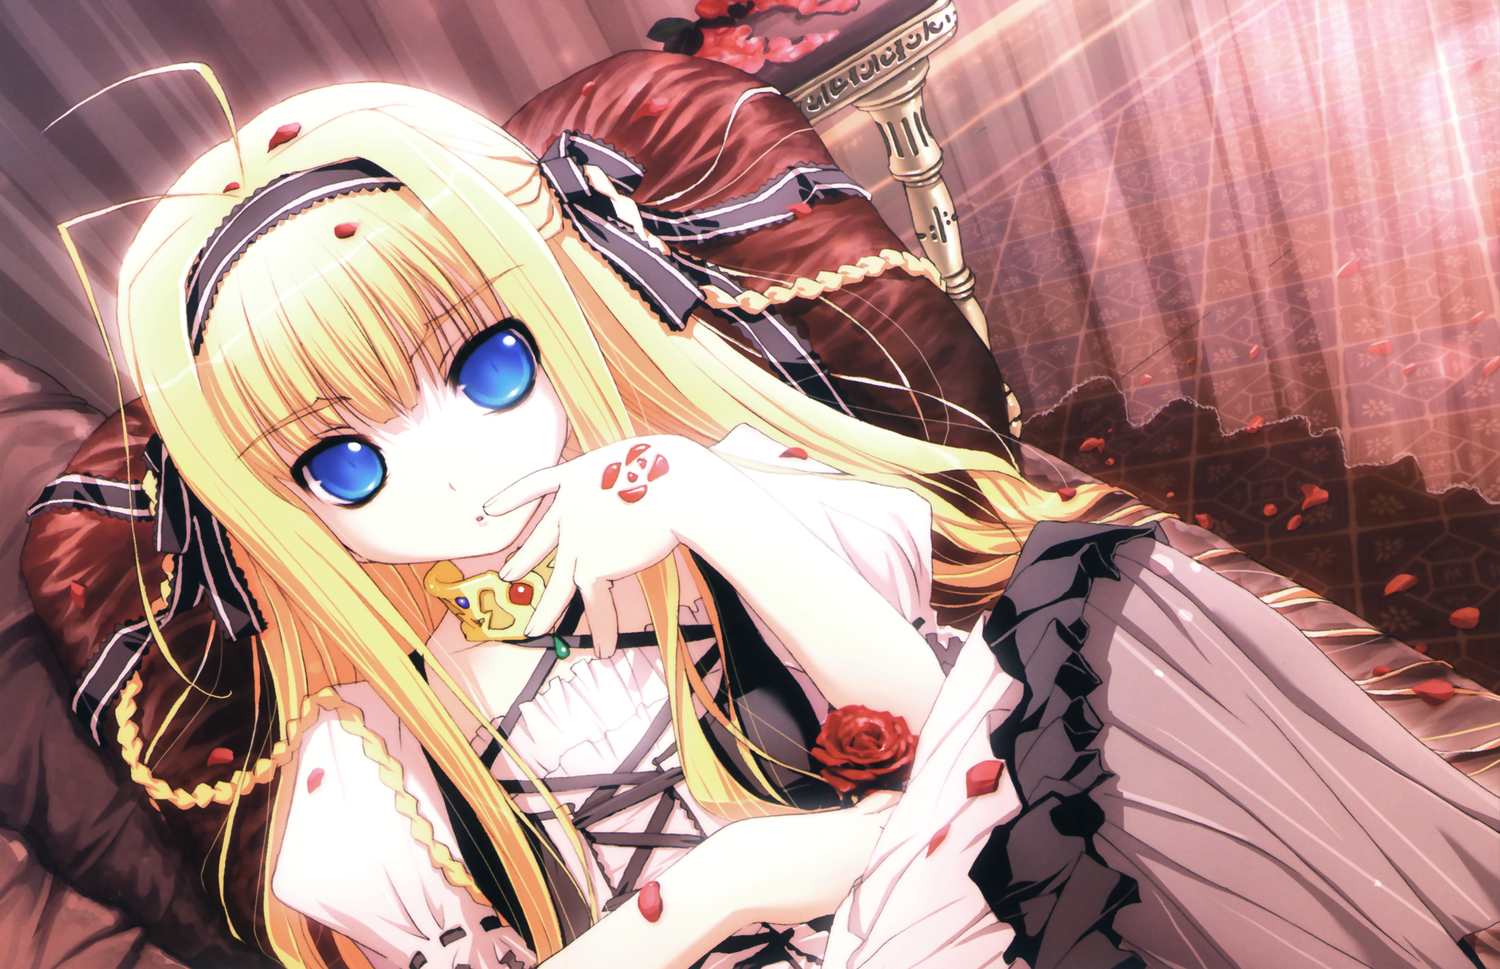 akata_itsuki dragon_crisis! lolita_fashion rose_(dragon_crisis!)